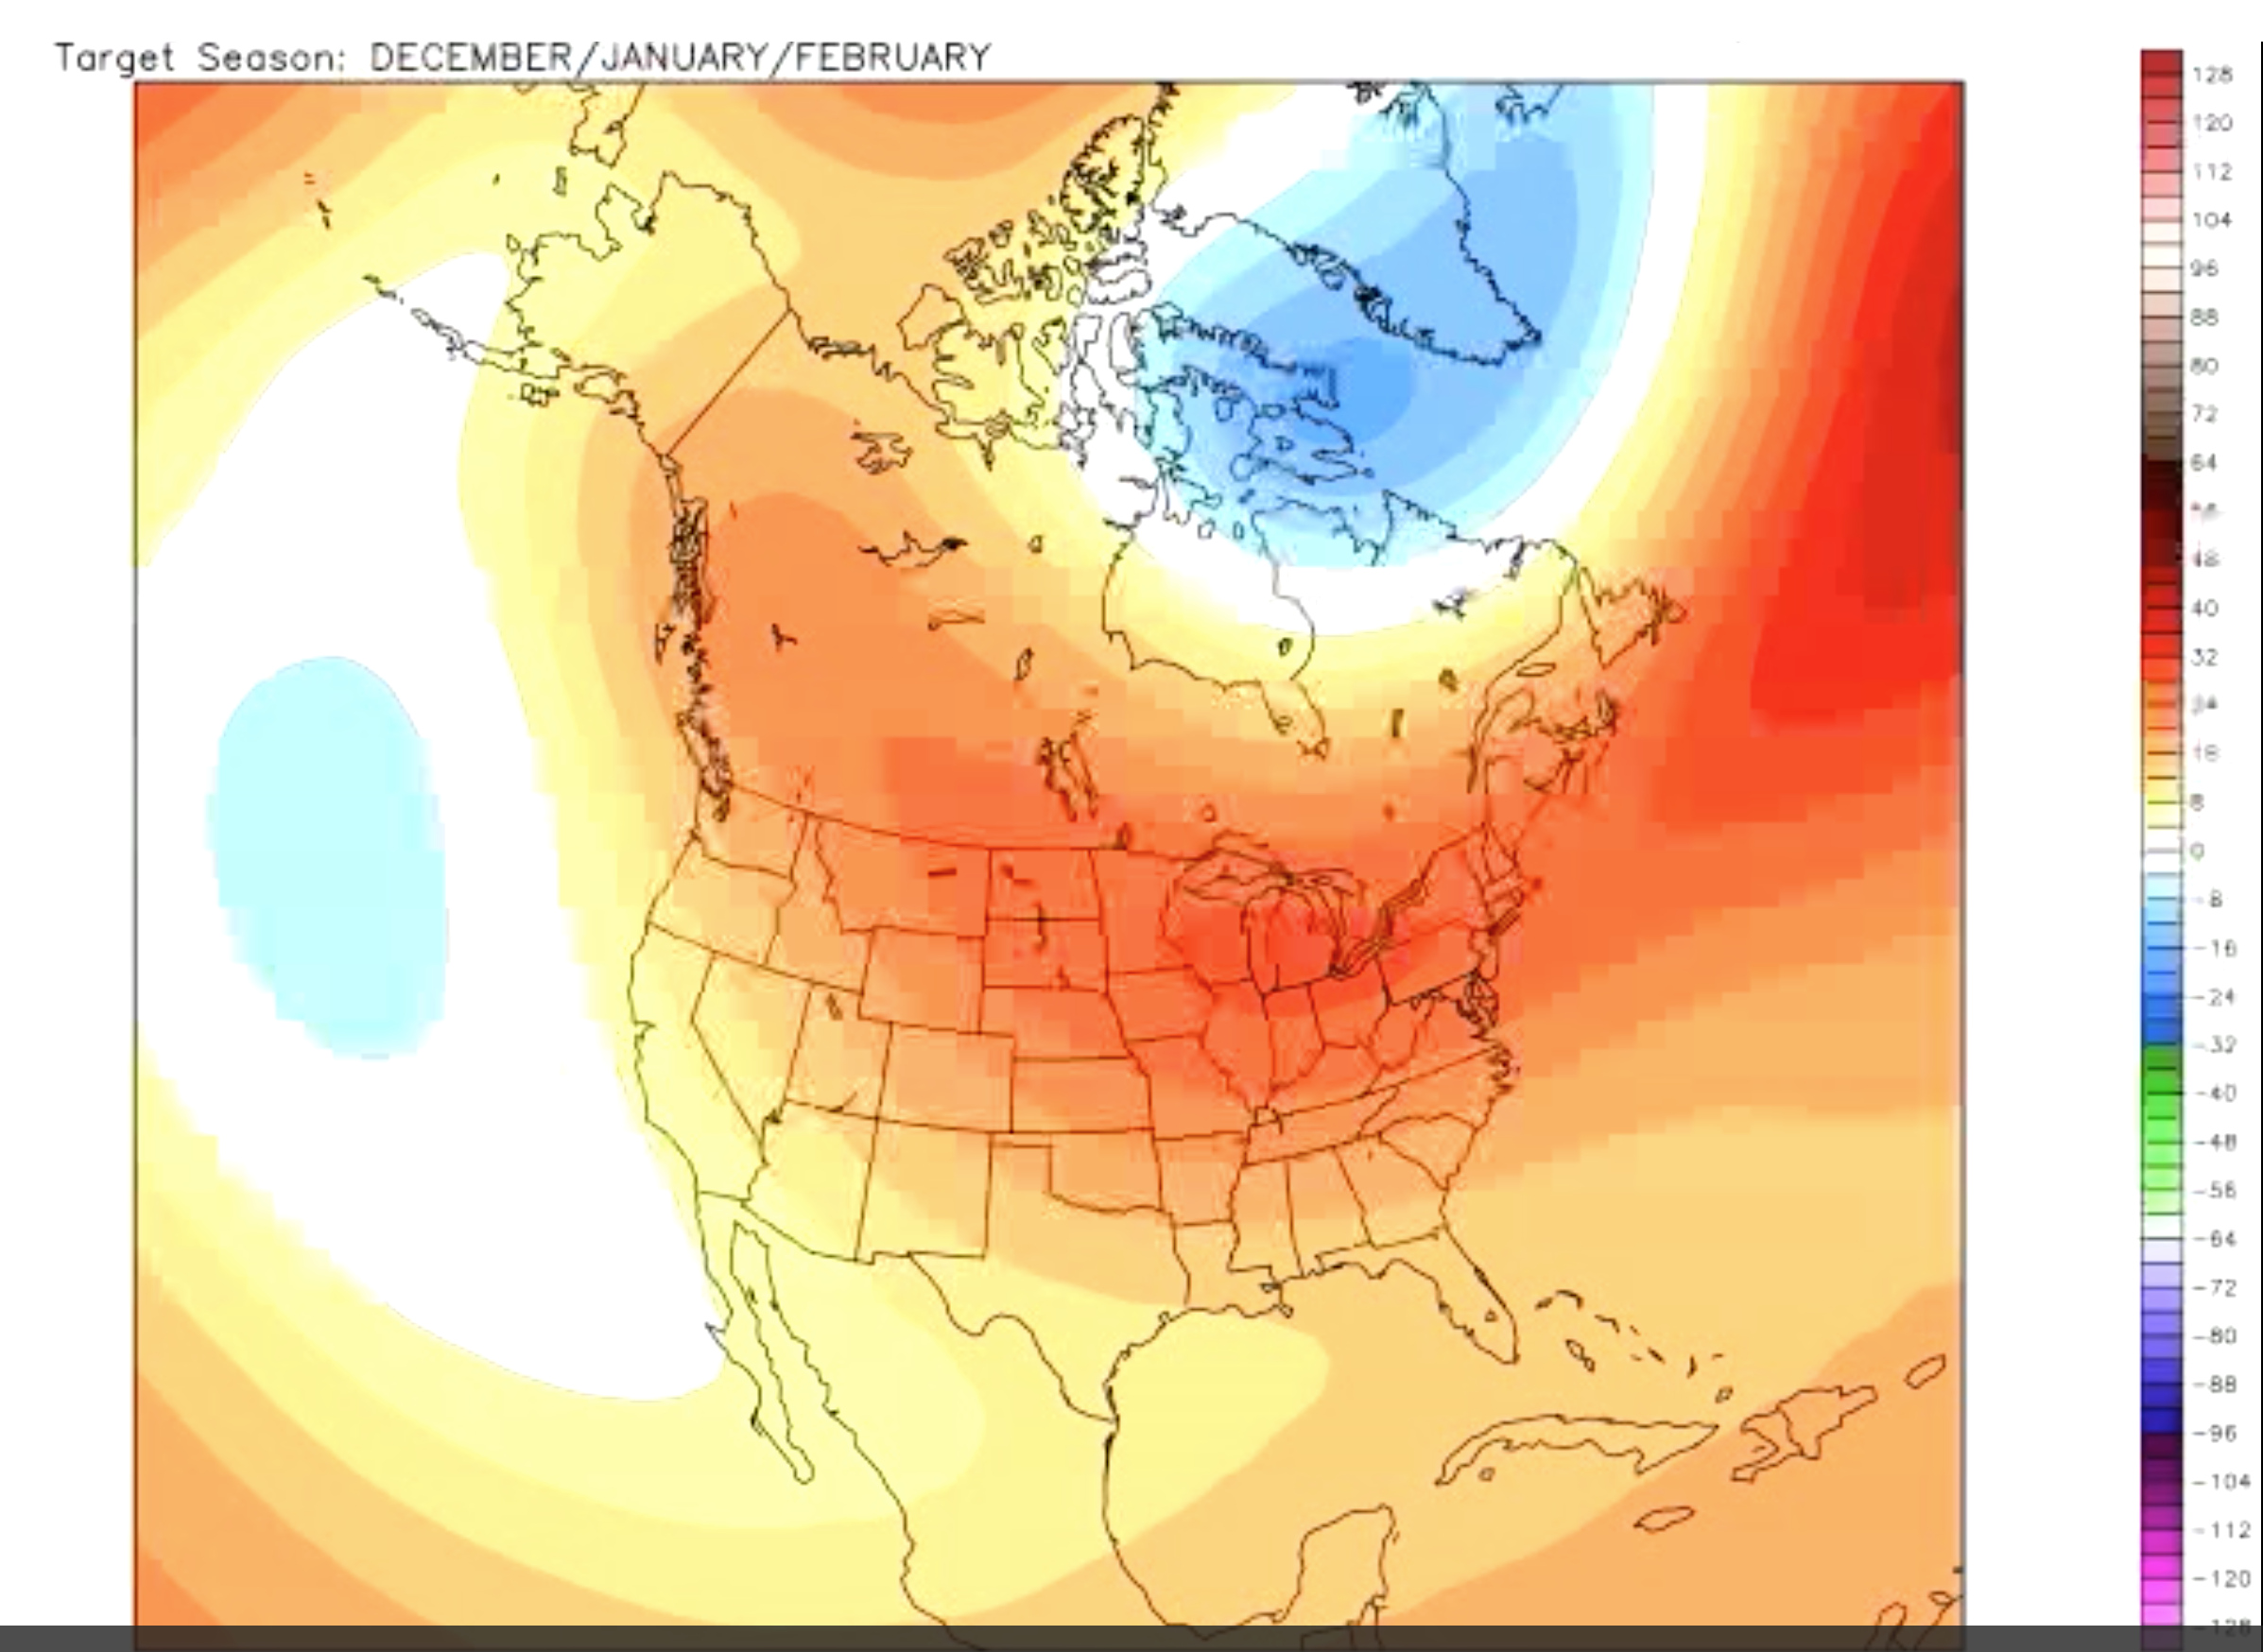 Early Winter Forecast 2018-19 | D Kevin Brown's Blog